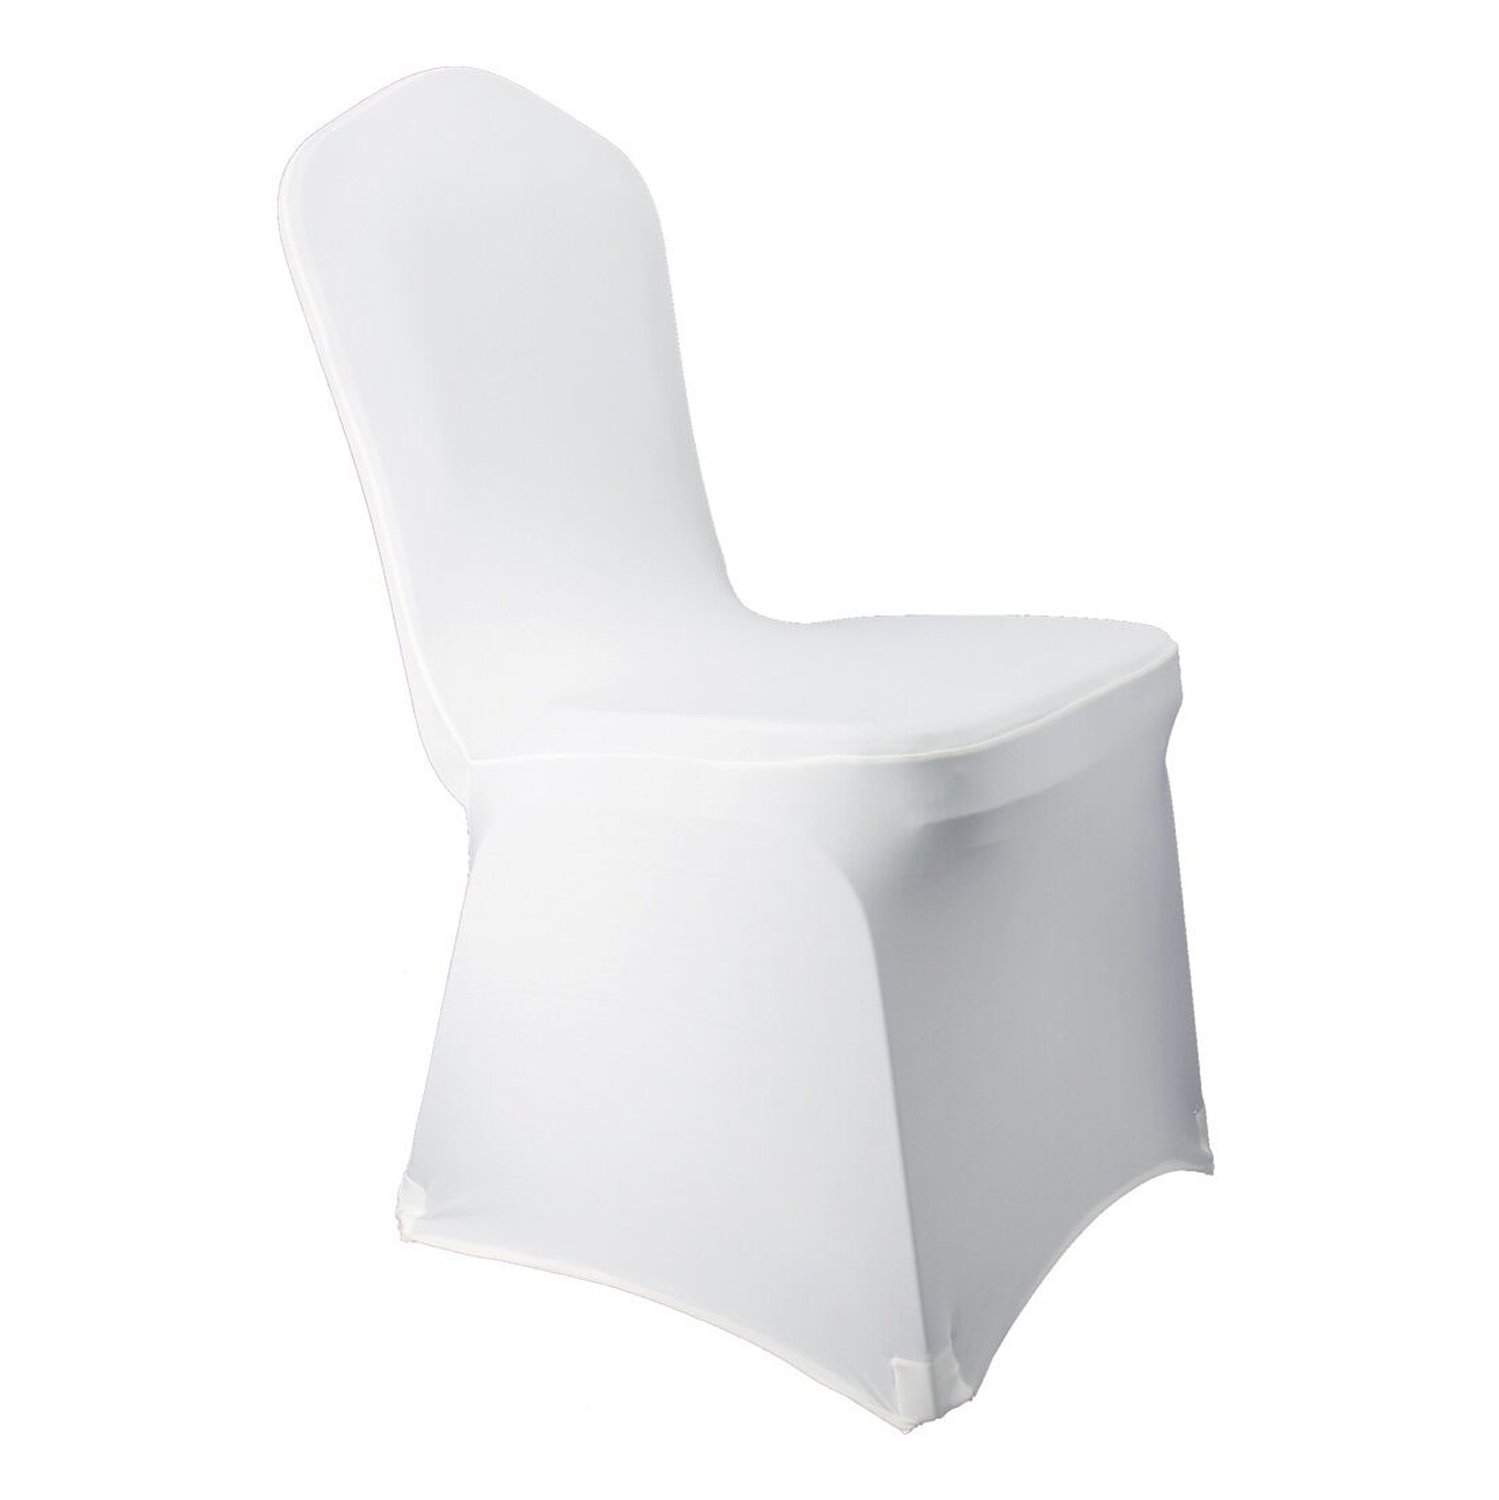 Astounding White Spandex Chair Covers Wedding Universal 10 Pcs Banquet Wedding Party Dining Decoration White 10 Frankydiablos Diy Chair Ideas Frankydiabloscom